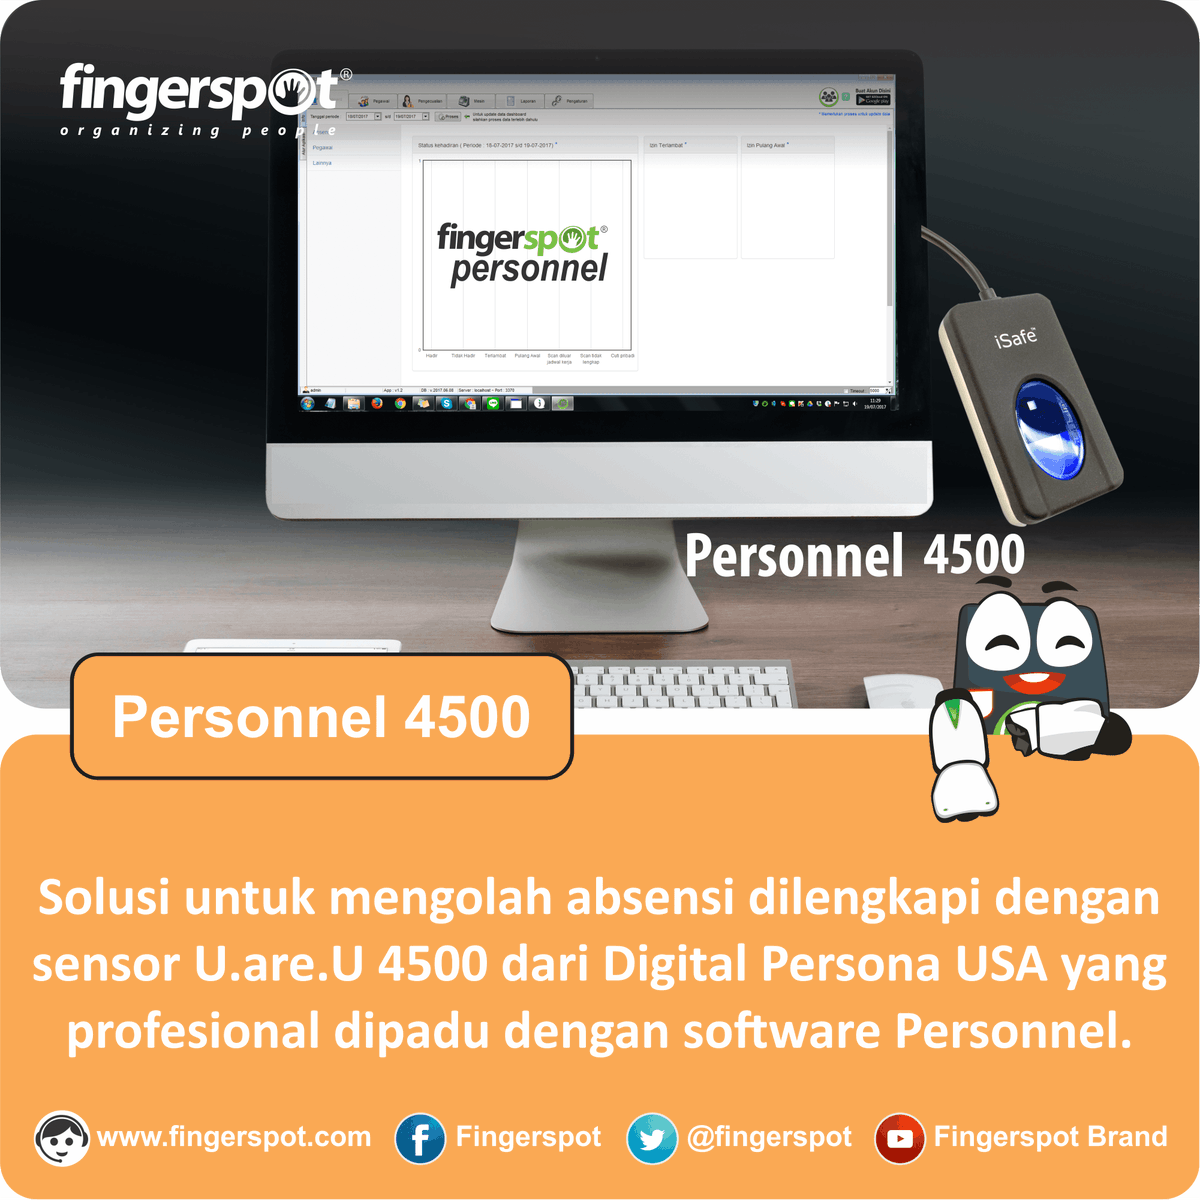 Personnel + U.areU = COMPLETE! Grab it fast! #Marketing #MarketingDigital #marketingtips #selling #Promote #Promo #Perfect #SEO #Software<br>http://pic.twitter.com/OEY093yLIb